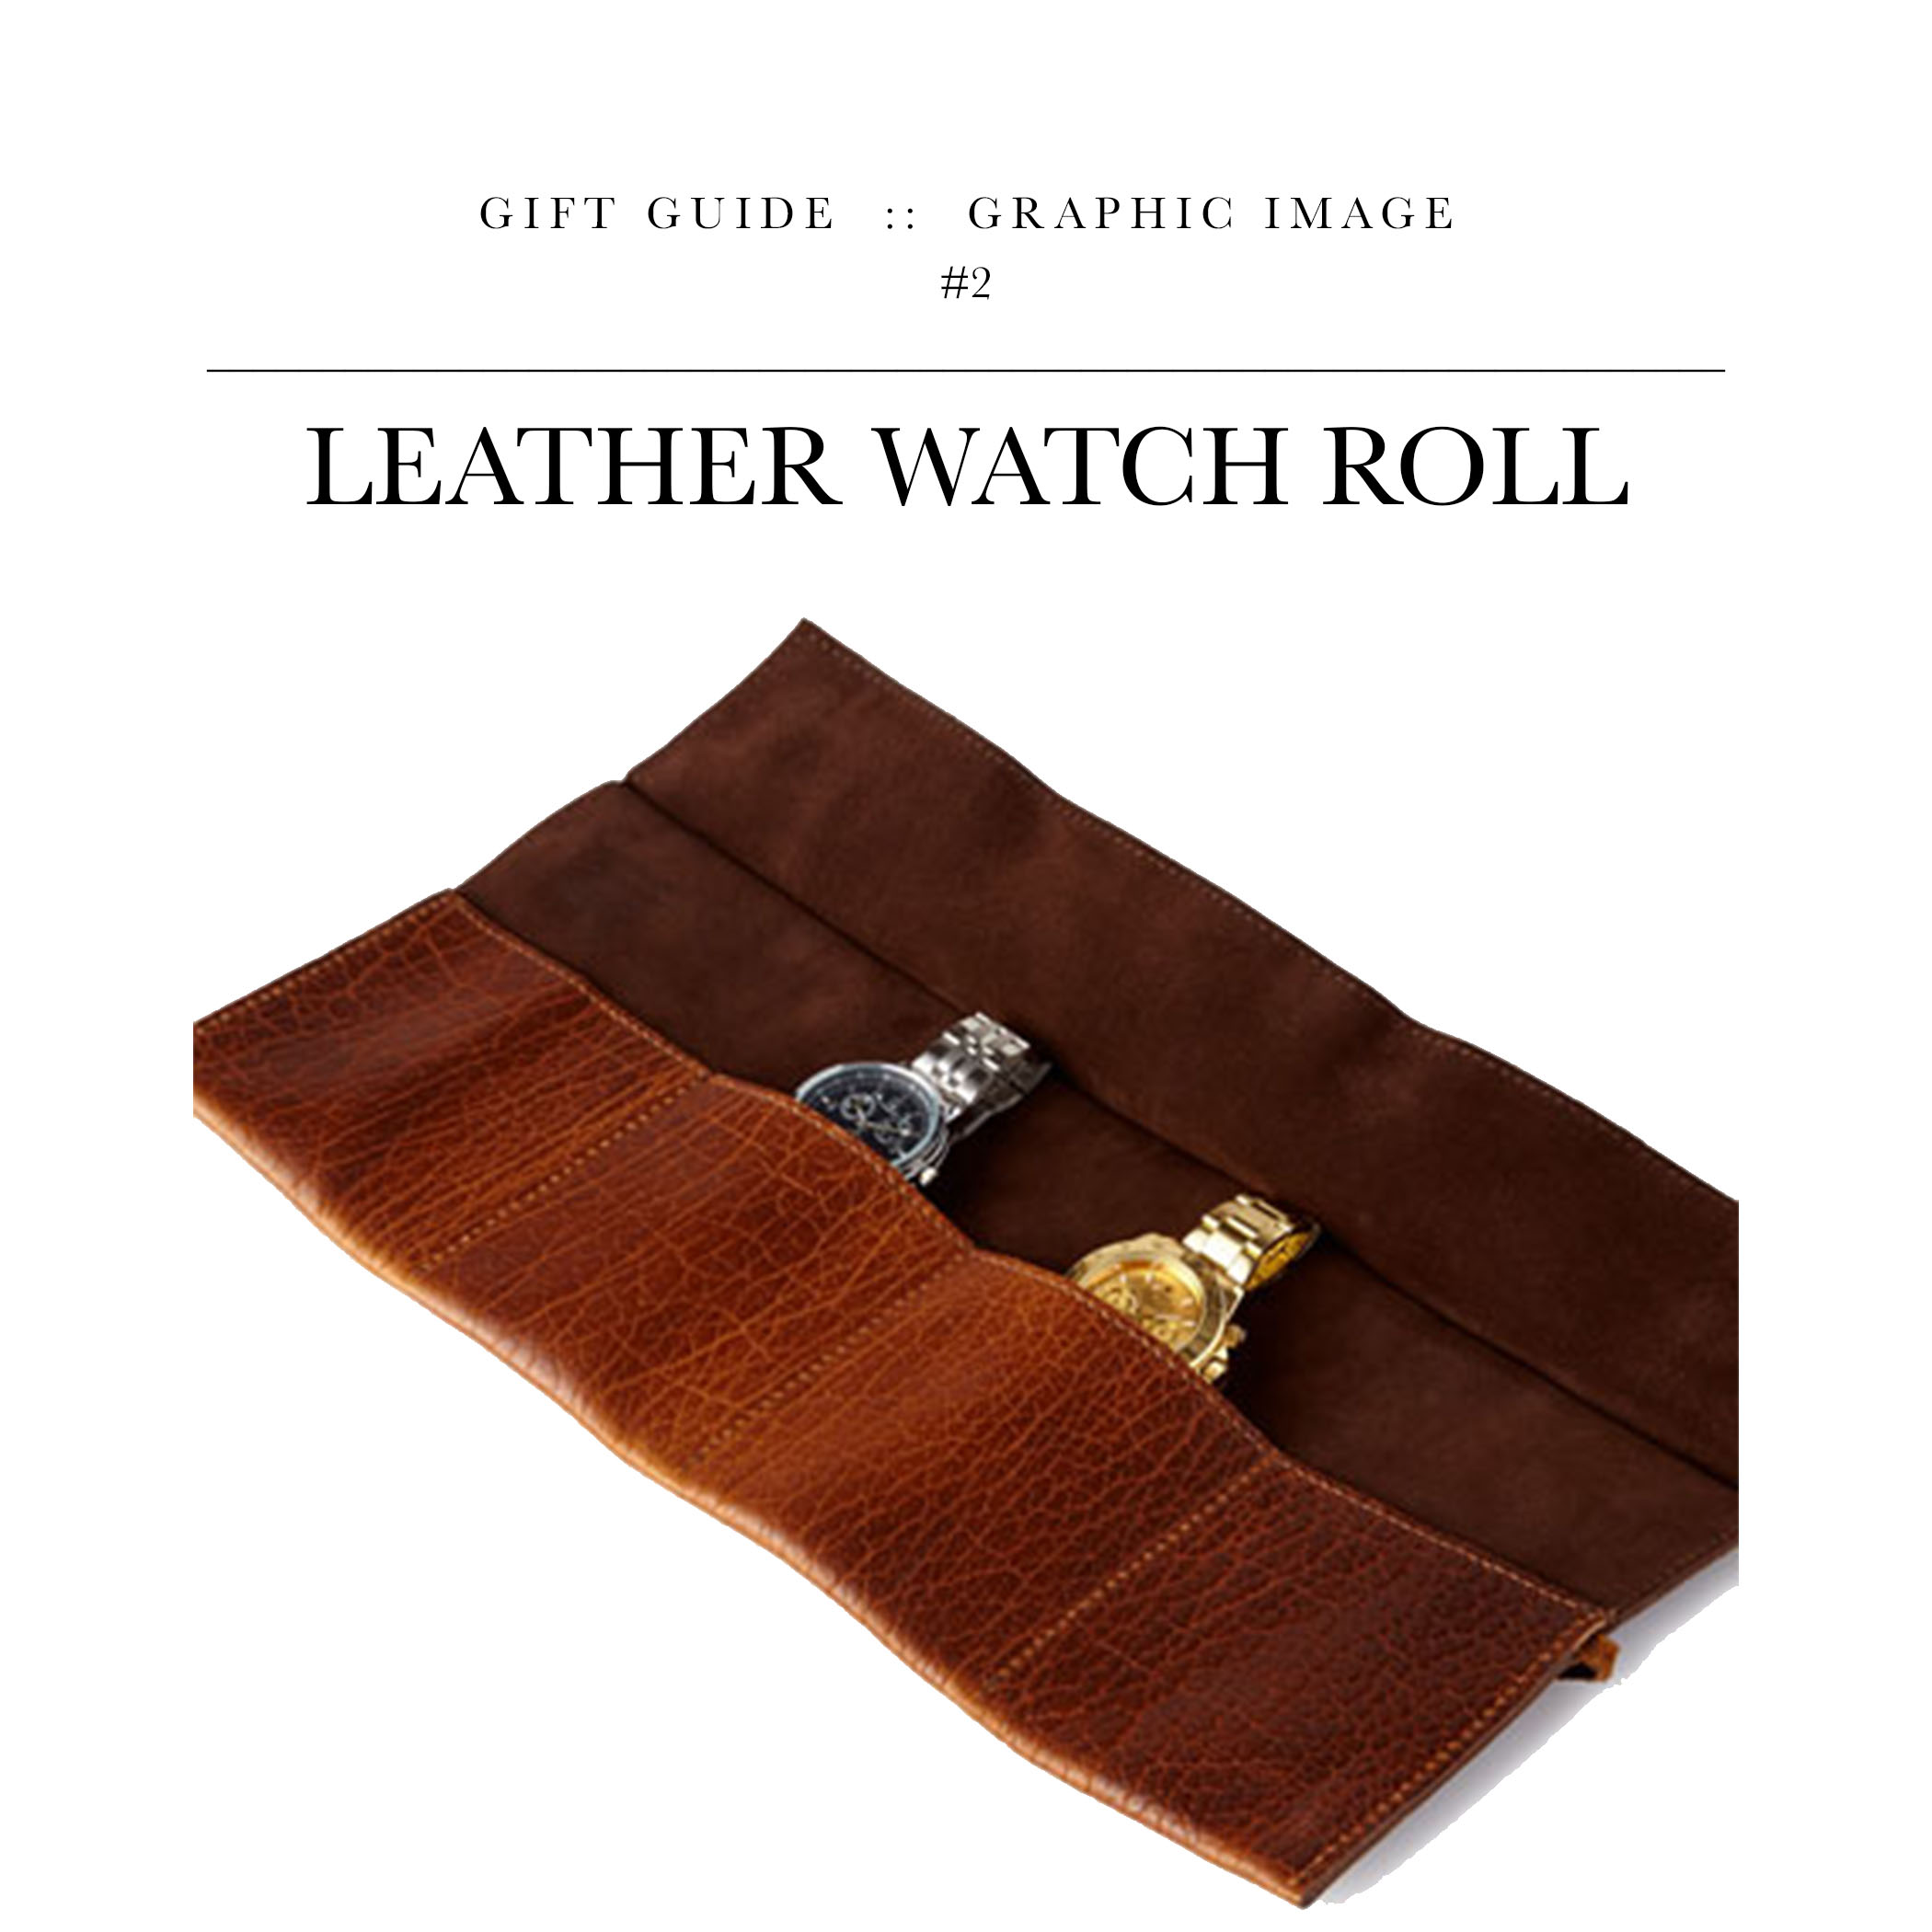 Leather Watch Roll  via Graphic Image // For the guy who travels with more watches than ties.